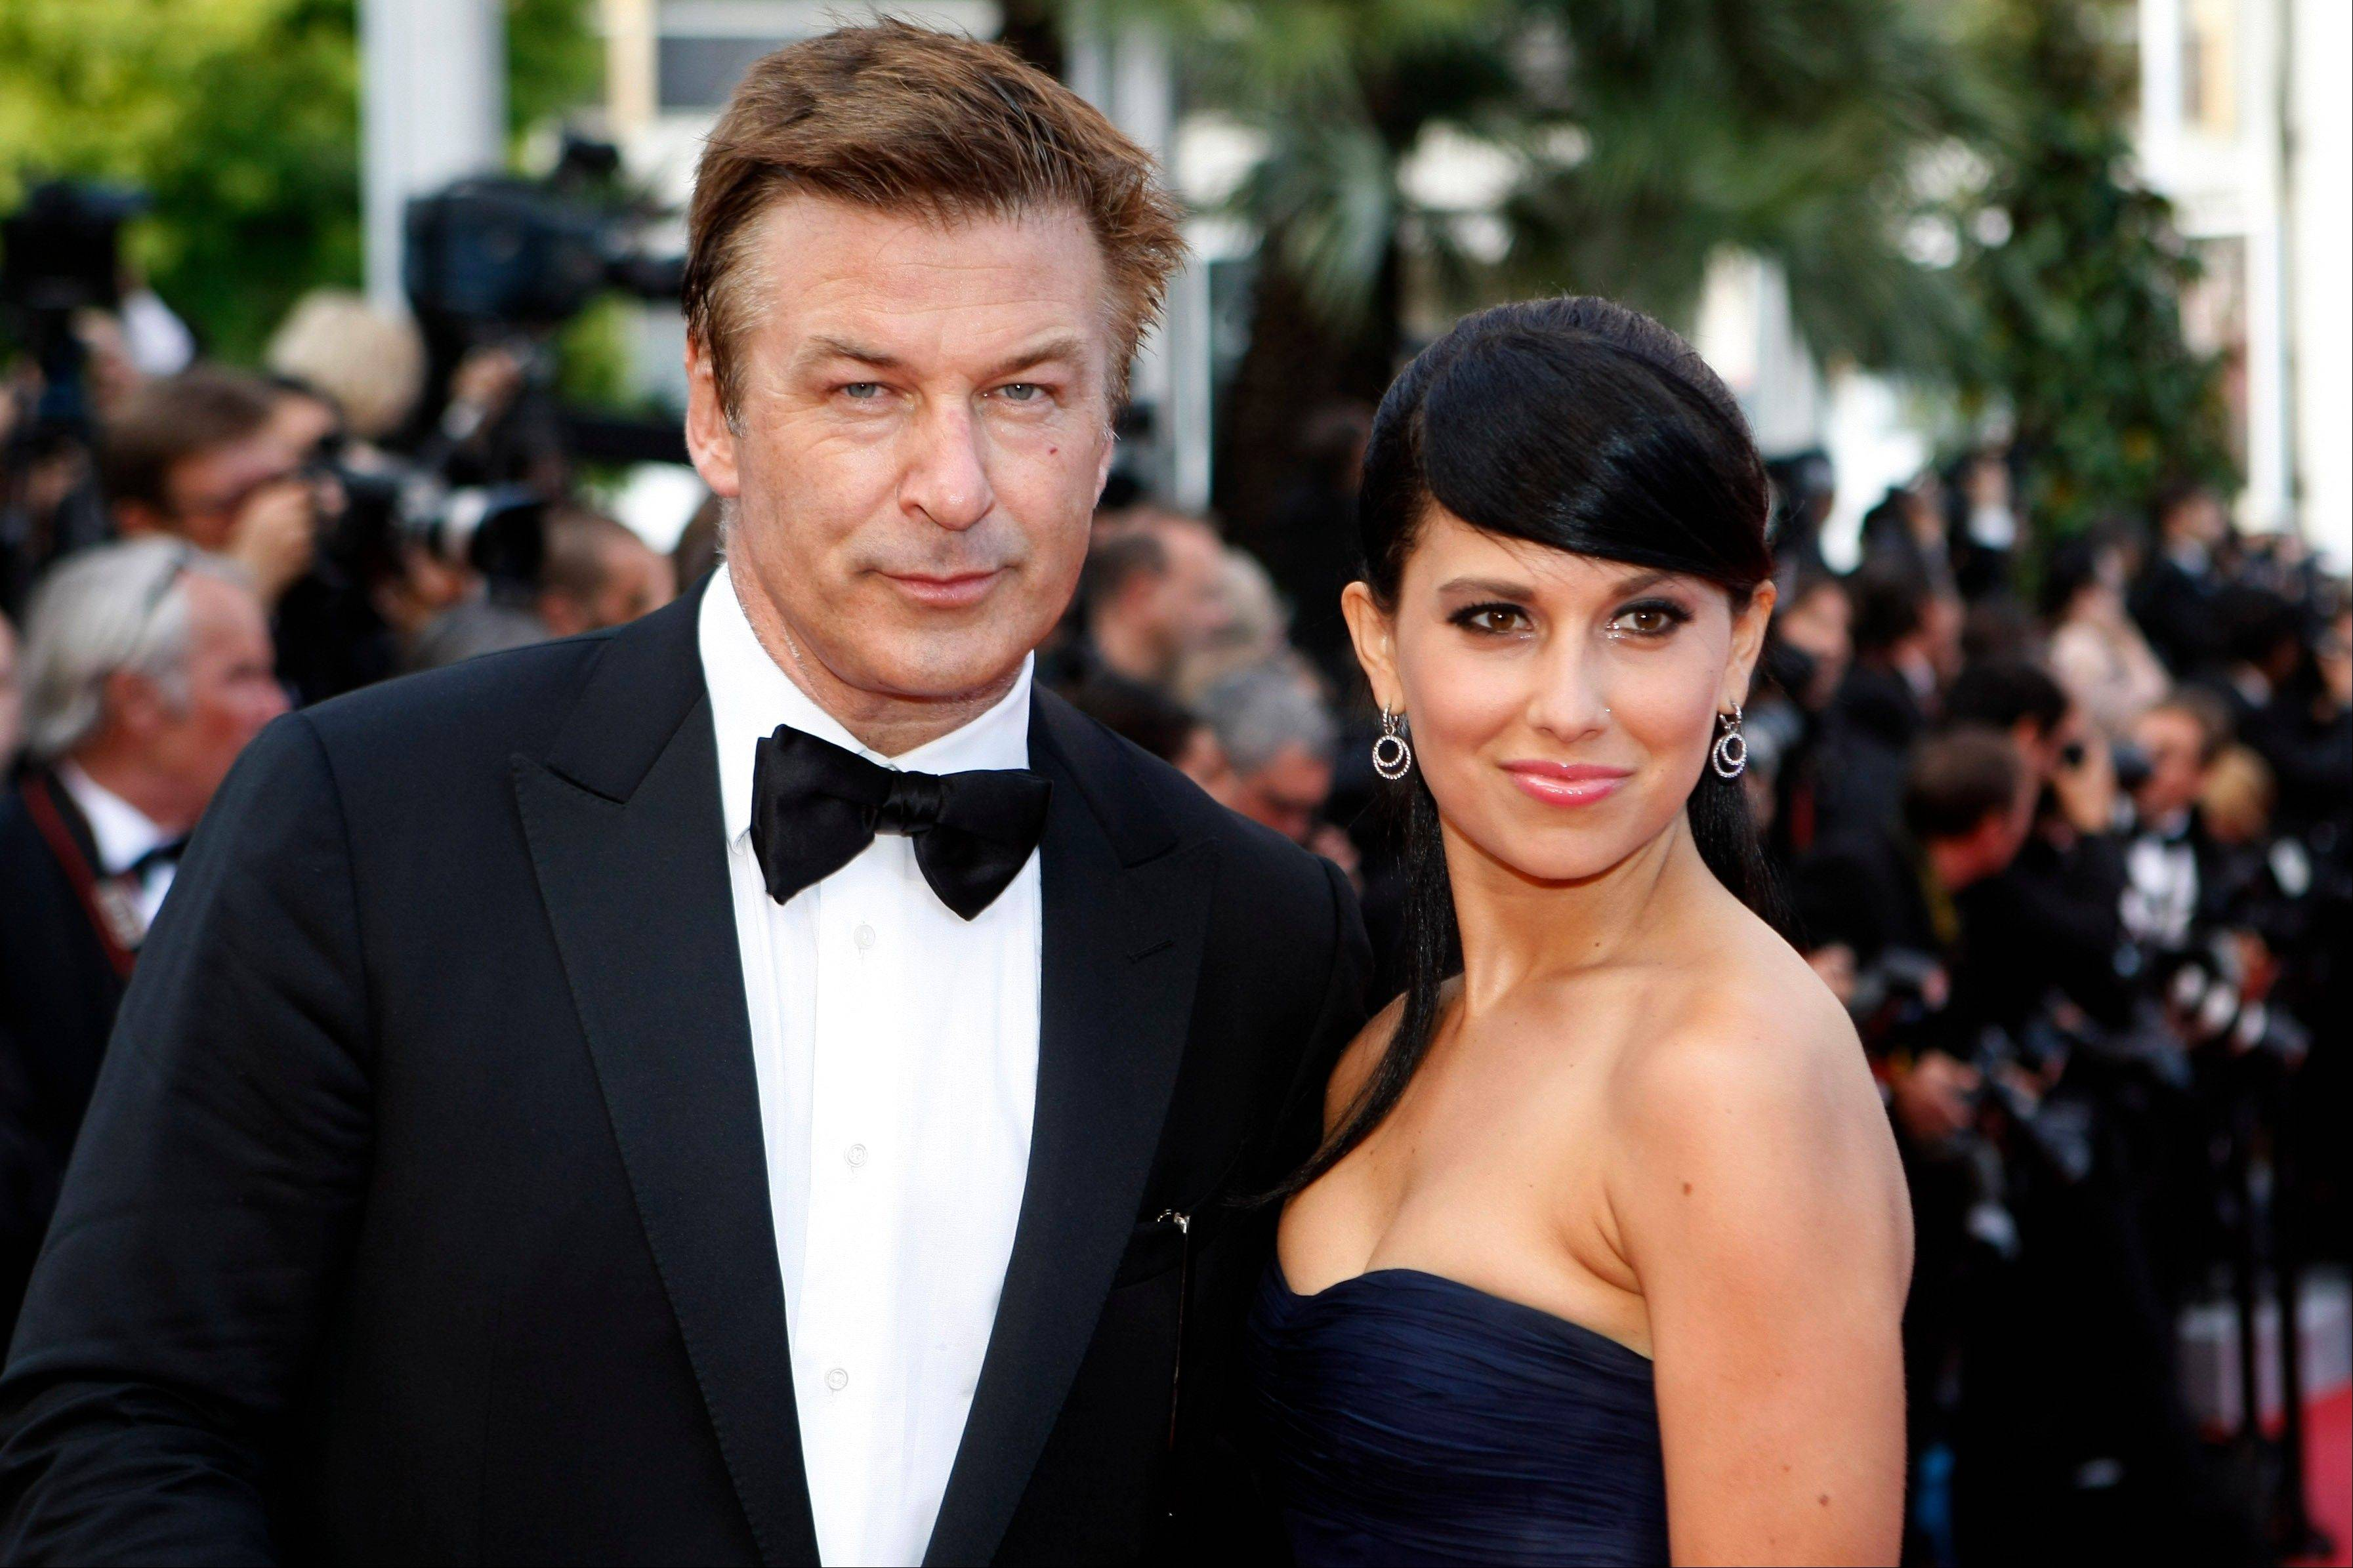 This May 26, 2012 file photo shows actor Alec Baldwin, left, and Hilaria Thomas arriving for the screening of Mud at the 65th international film festival, in Cannes, southern France.